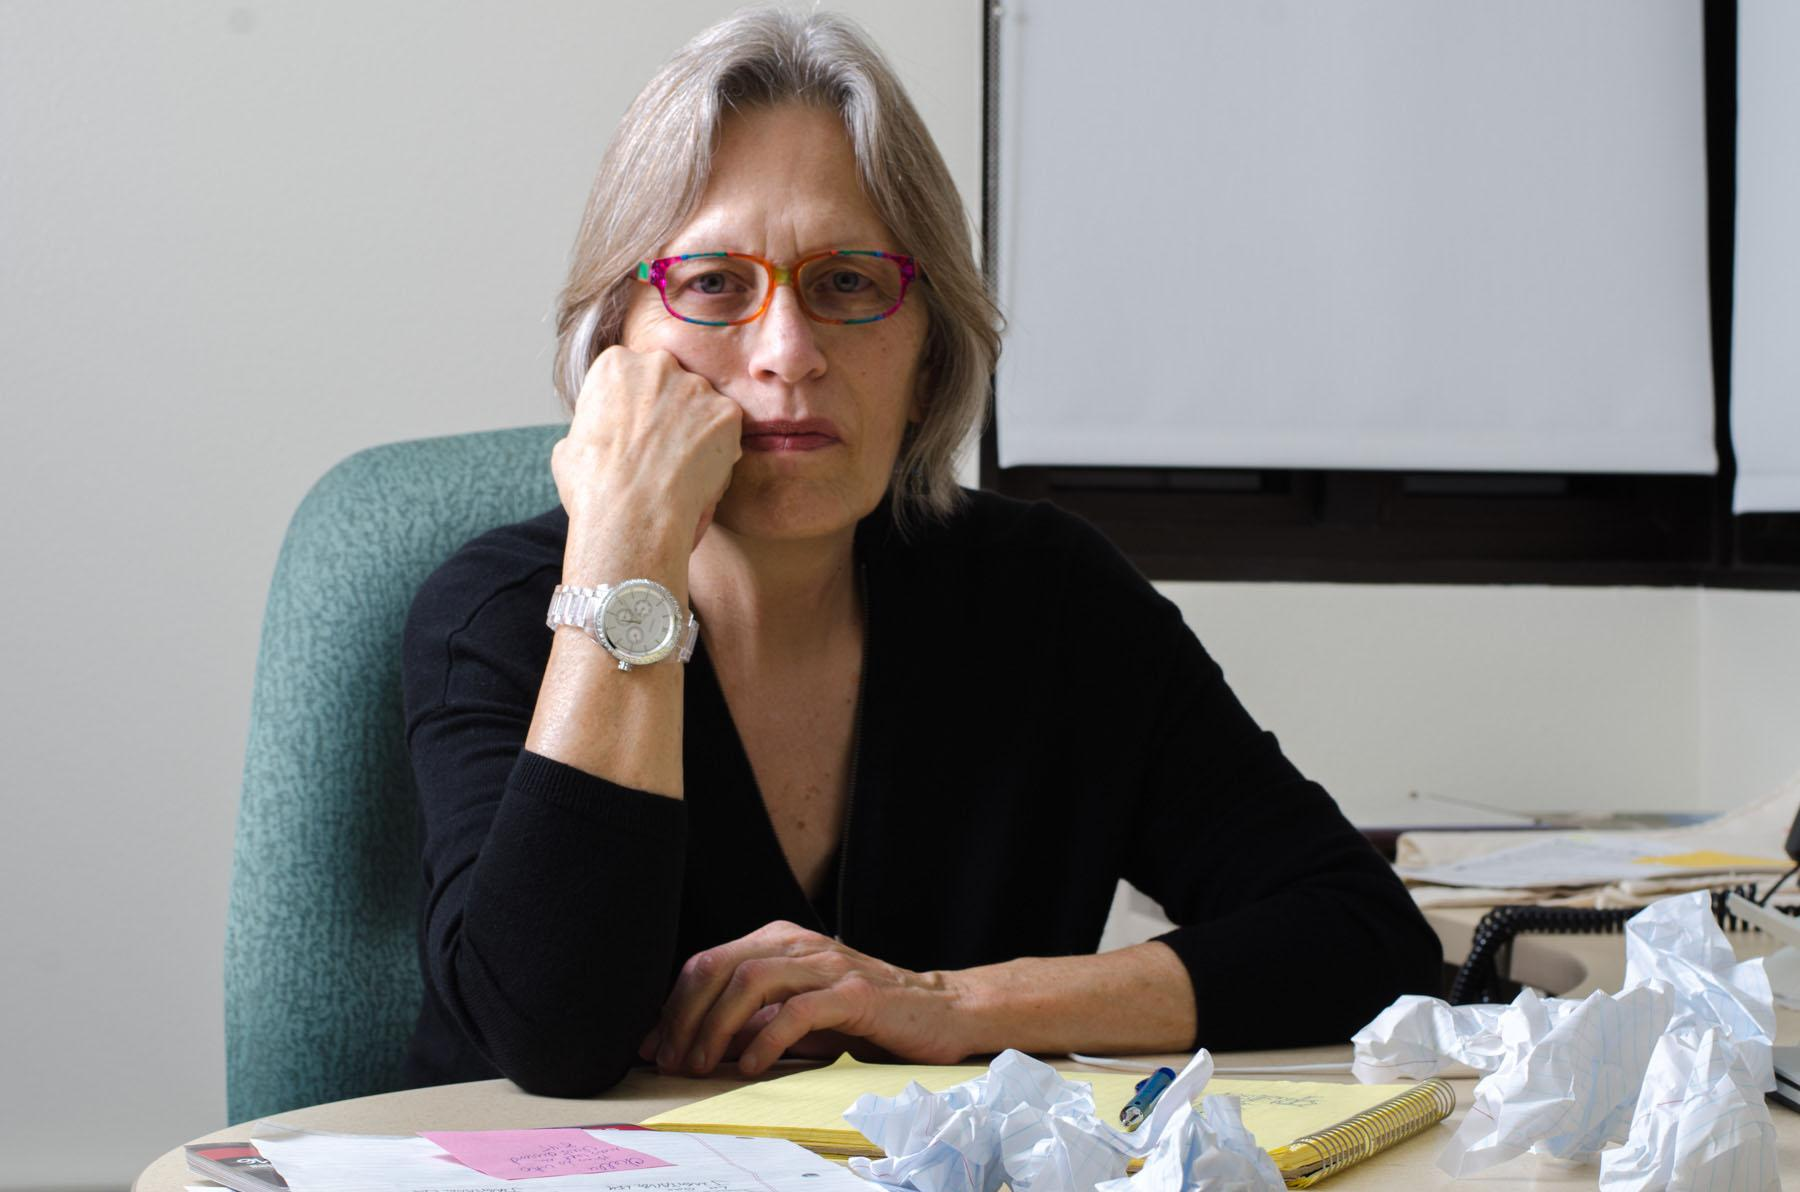 Chella Courington, author and English professor at City College, has recently published her novella 'The Somewhat Sad Tale of the Pitcher and Crow,' Tuesday, Nov. 10, 2015, pictured at her office in the Interdisciplinary Center on West Campus. The story, which shares some parallels to her own life, follows the escapades of two married writers, Tom and Adele, while they try and organize the living and creative space between them. Courington will be reading a piece from her novella on Wednesday, Nov. 18 in the Atkinson Gallery.